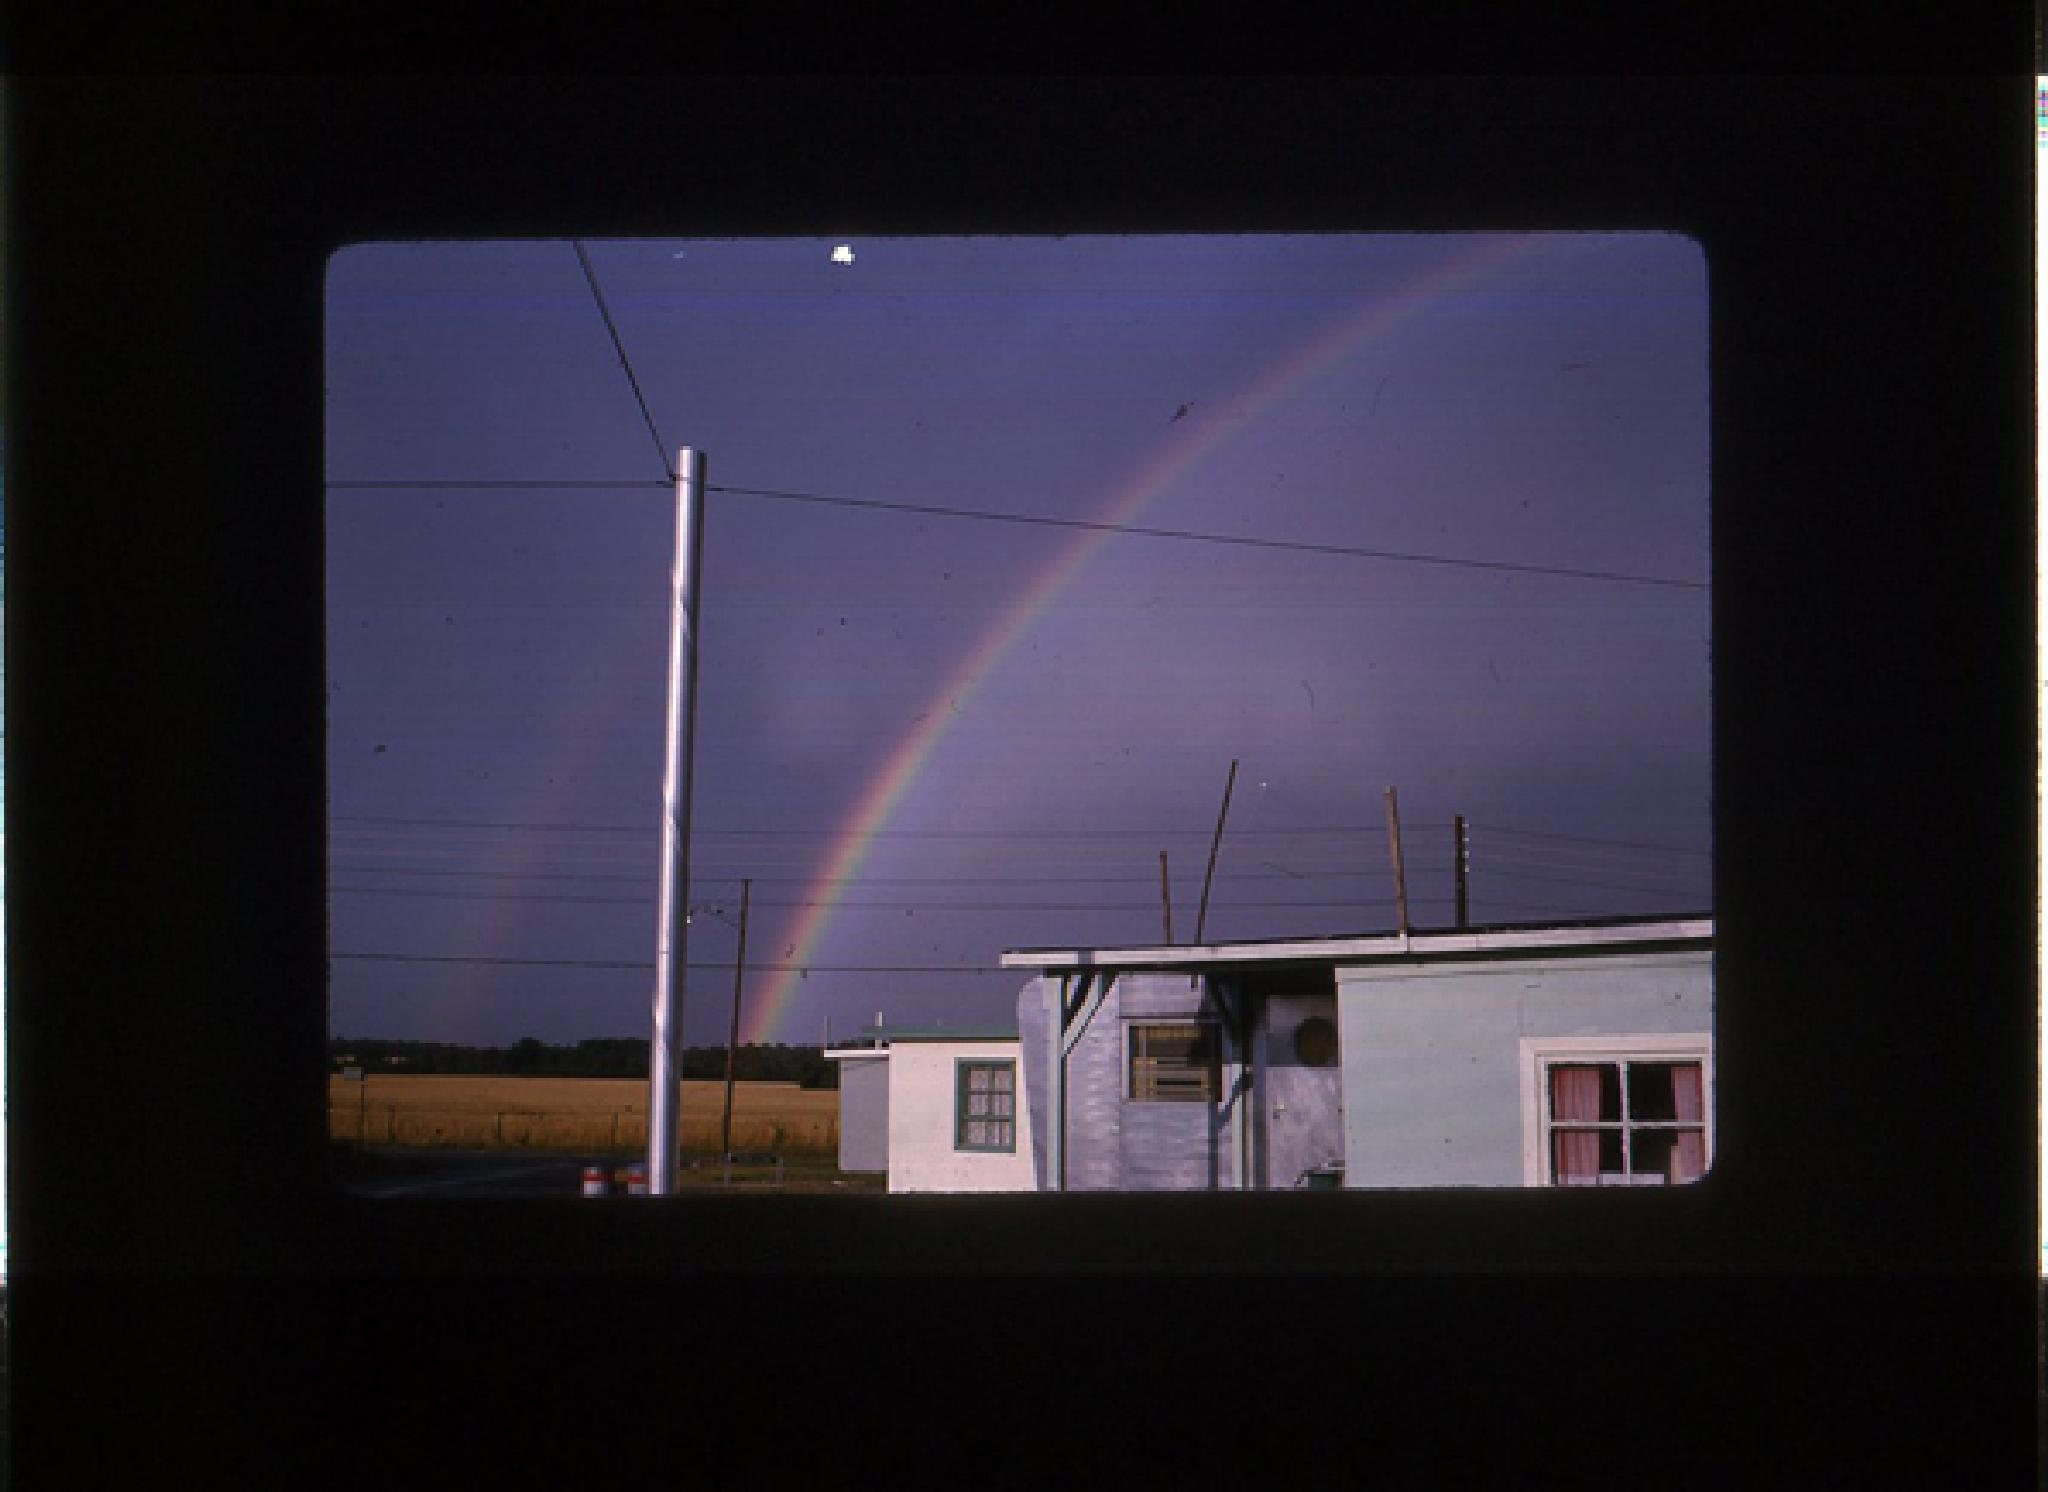 double rainbow by searcher69